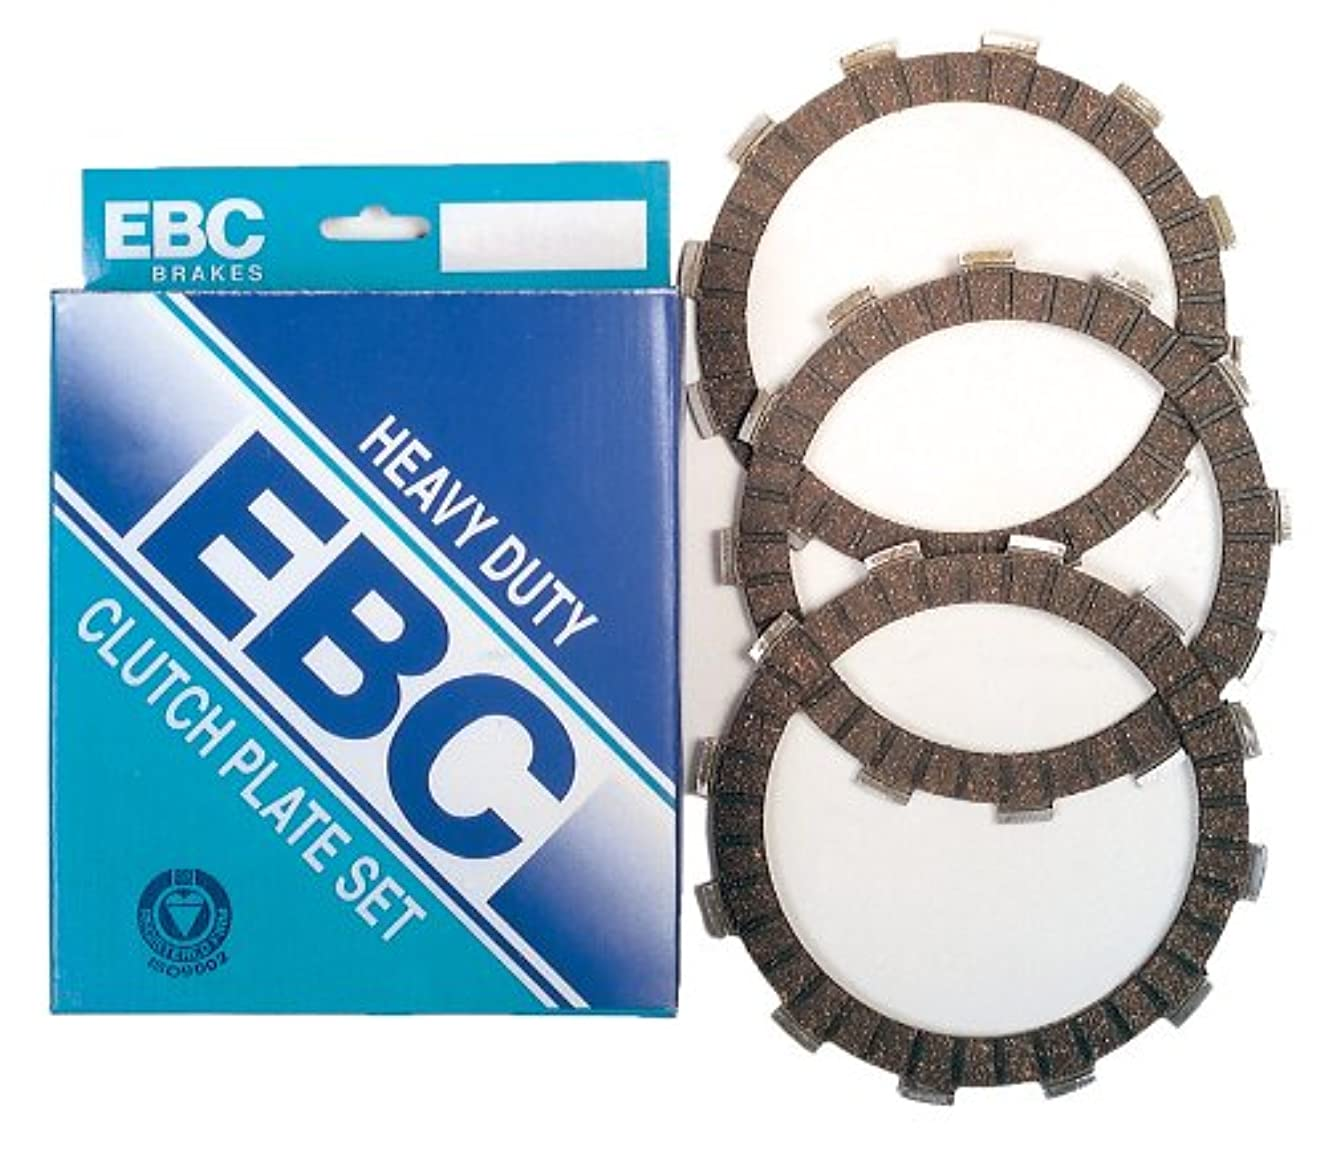 EBC Brakes CK3329 Clutch Friction Plate Kit